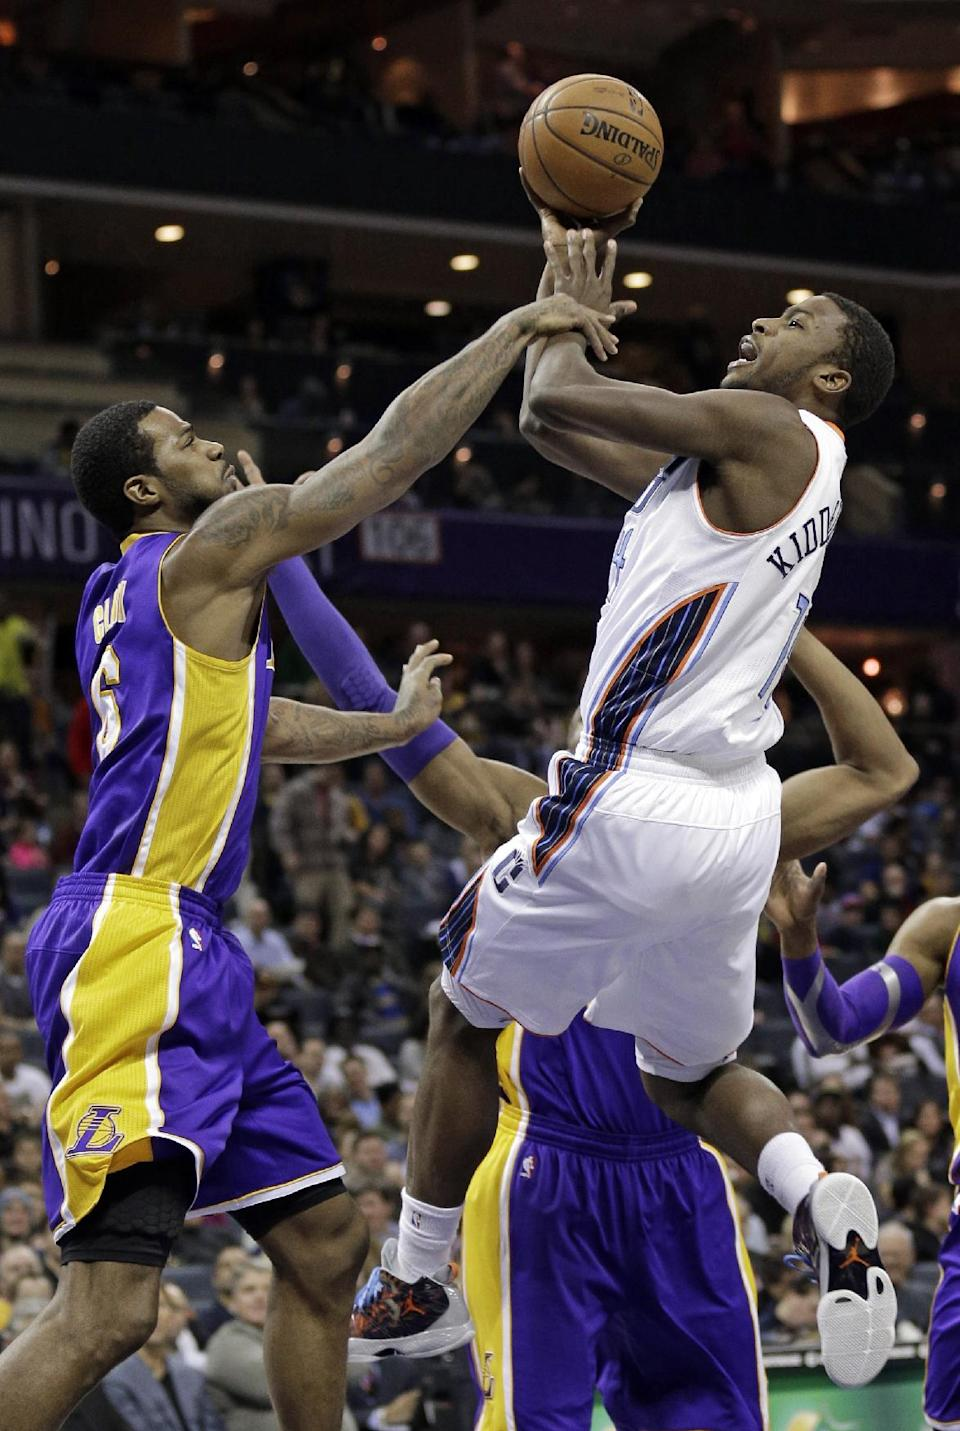 Charlotte Bobcats' Michael Kidd-Gilchrist, right, is fouled by Los Angeles Lakers' Earl Clark, left, during the first half of an NBA basketball game in Charlotte, N.C., Friday, Feb. 8, 2013. (AP Photo/Chuck Burton)